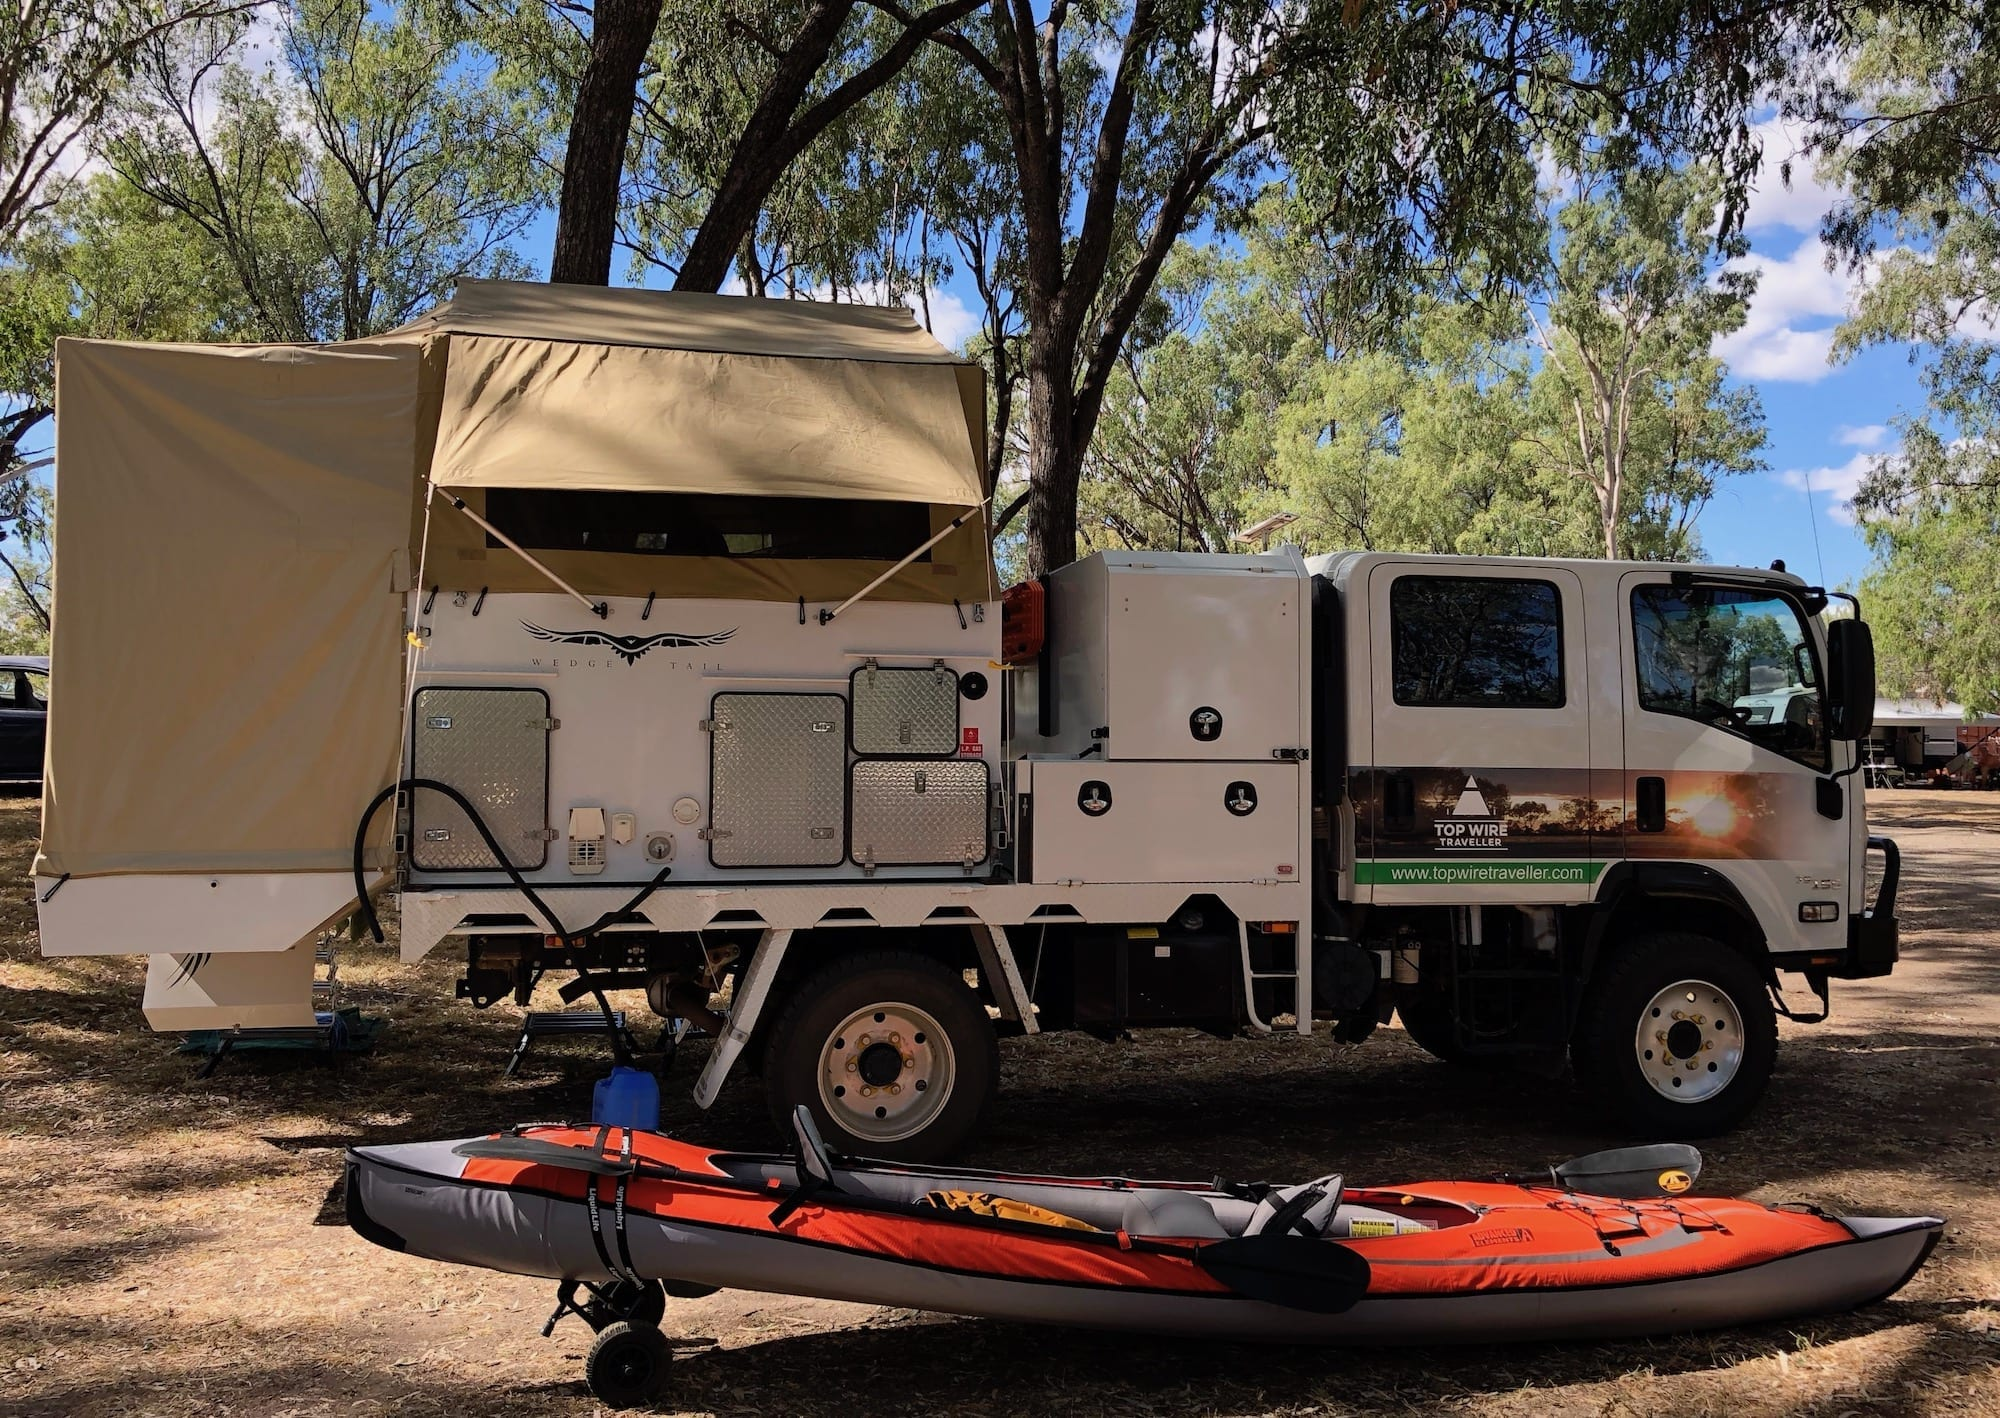 Our slide on camper mounted on the back of our truck.